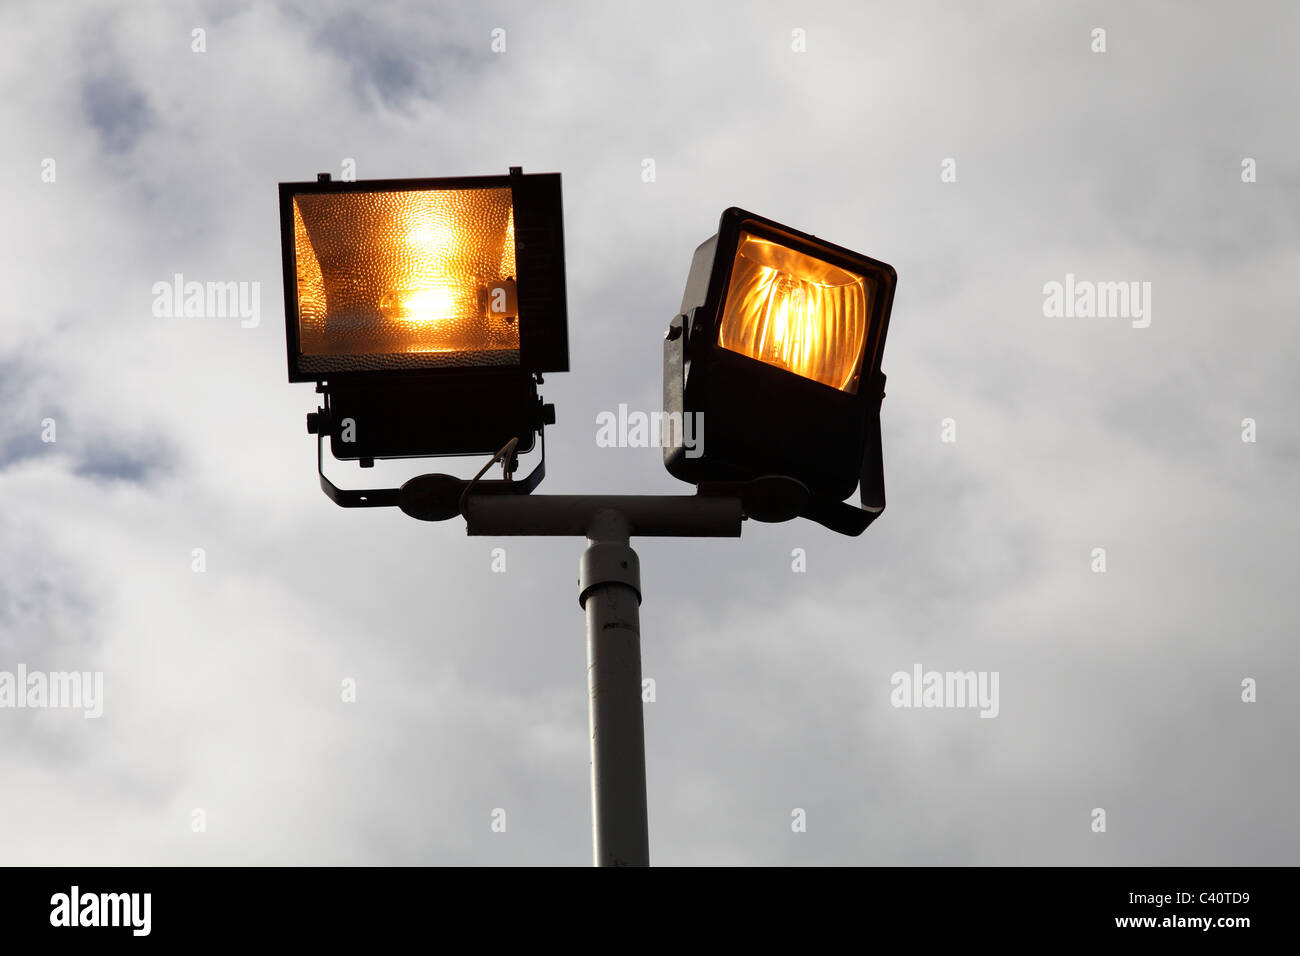 Lights on in daylight at business premises in the U.K. - Stock Image